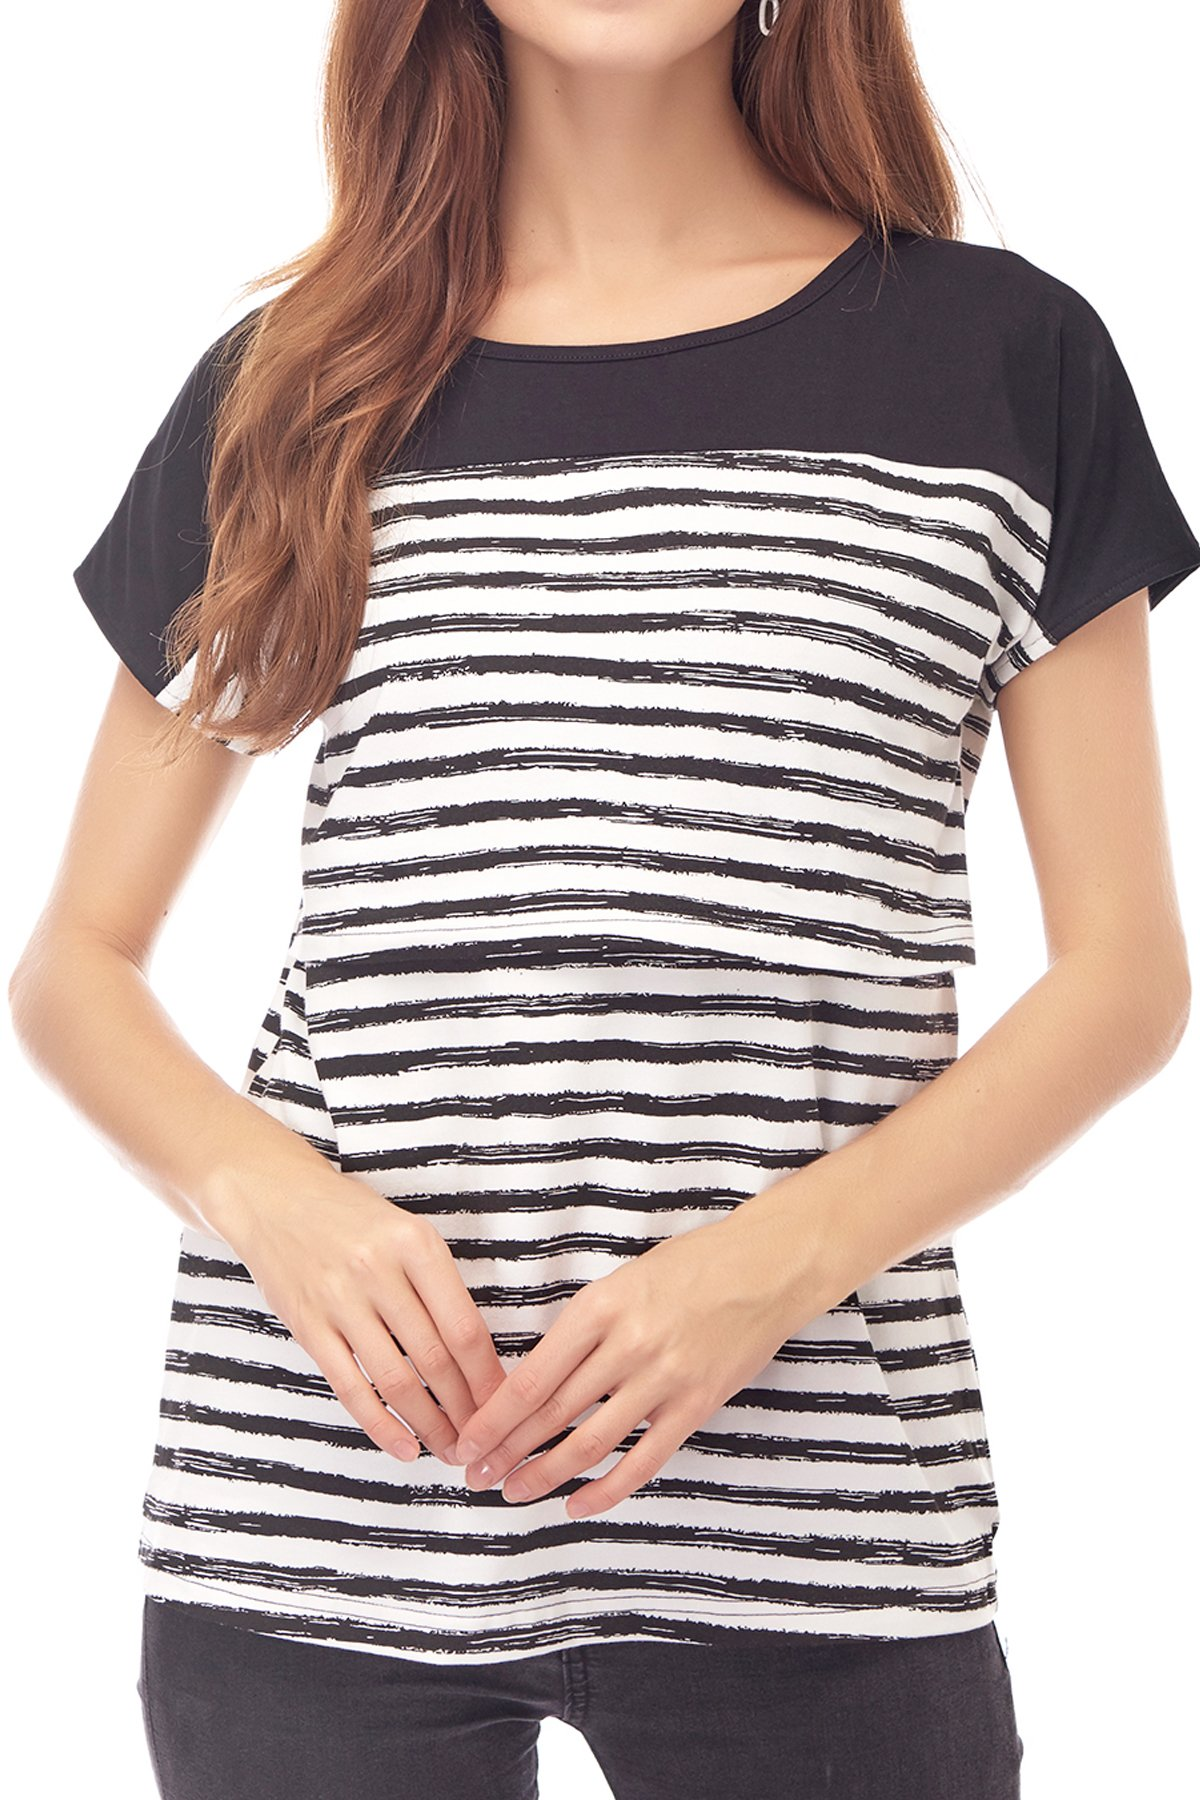 Smallshow Women's Maternity Nursing Tops Breastfeeding T-Shirt Large Black by Smallshow (Image #6)